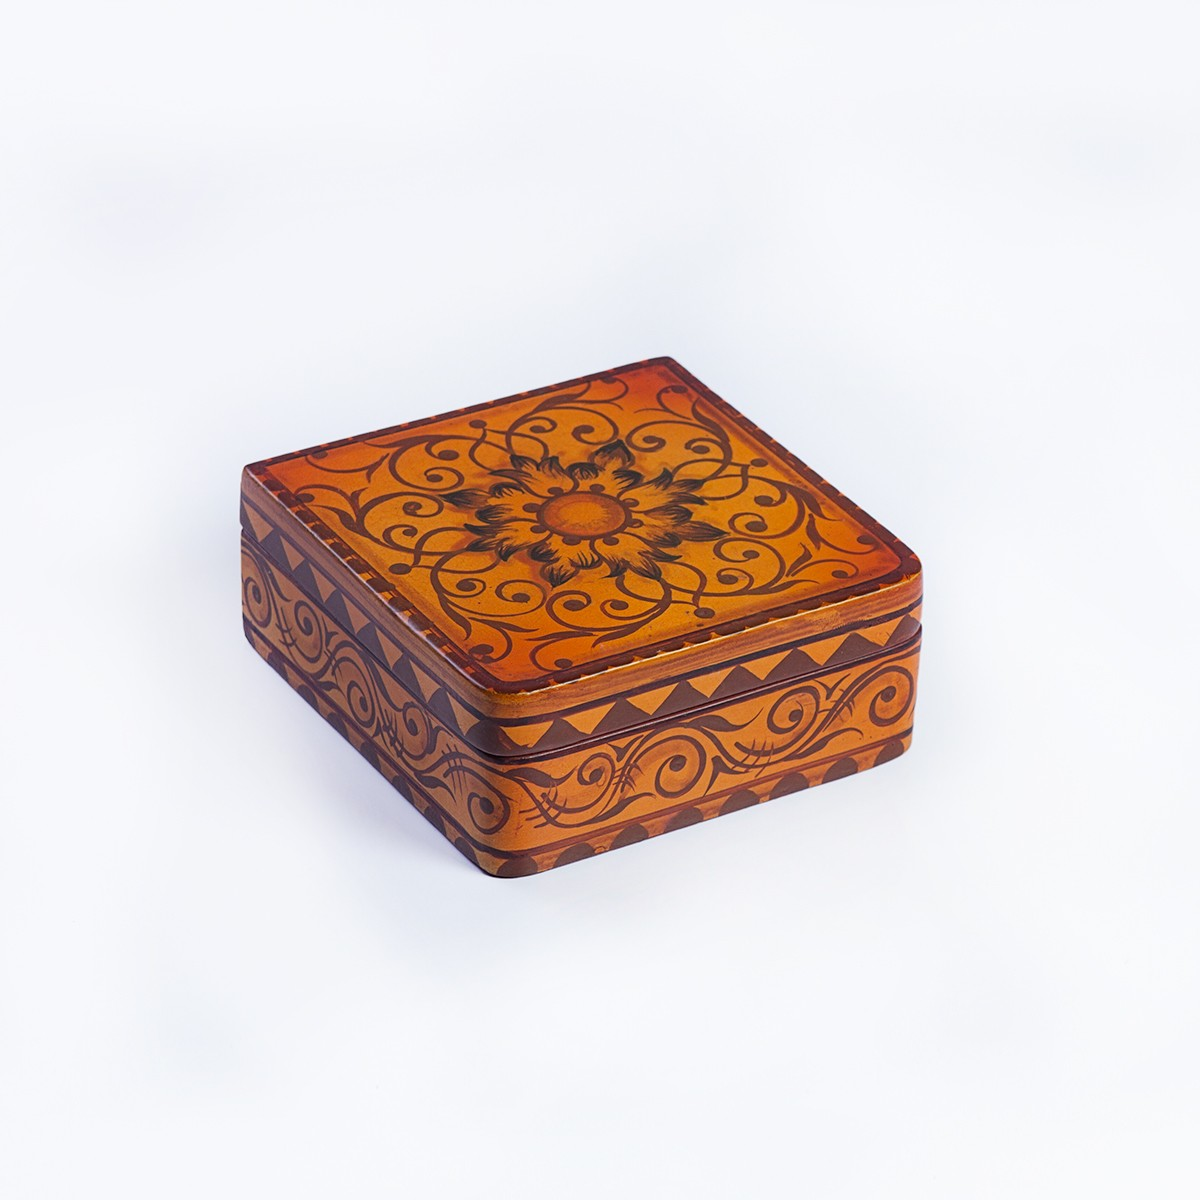 Vintage decorated jewelry box - dark orange